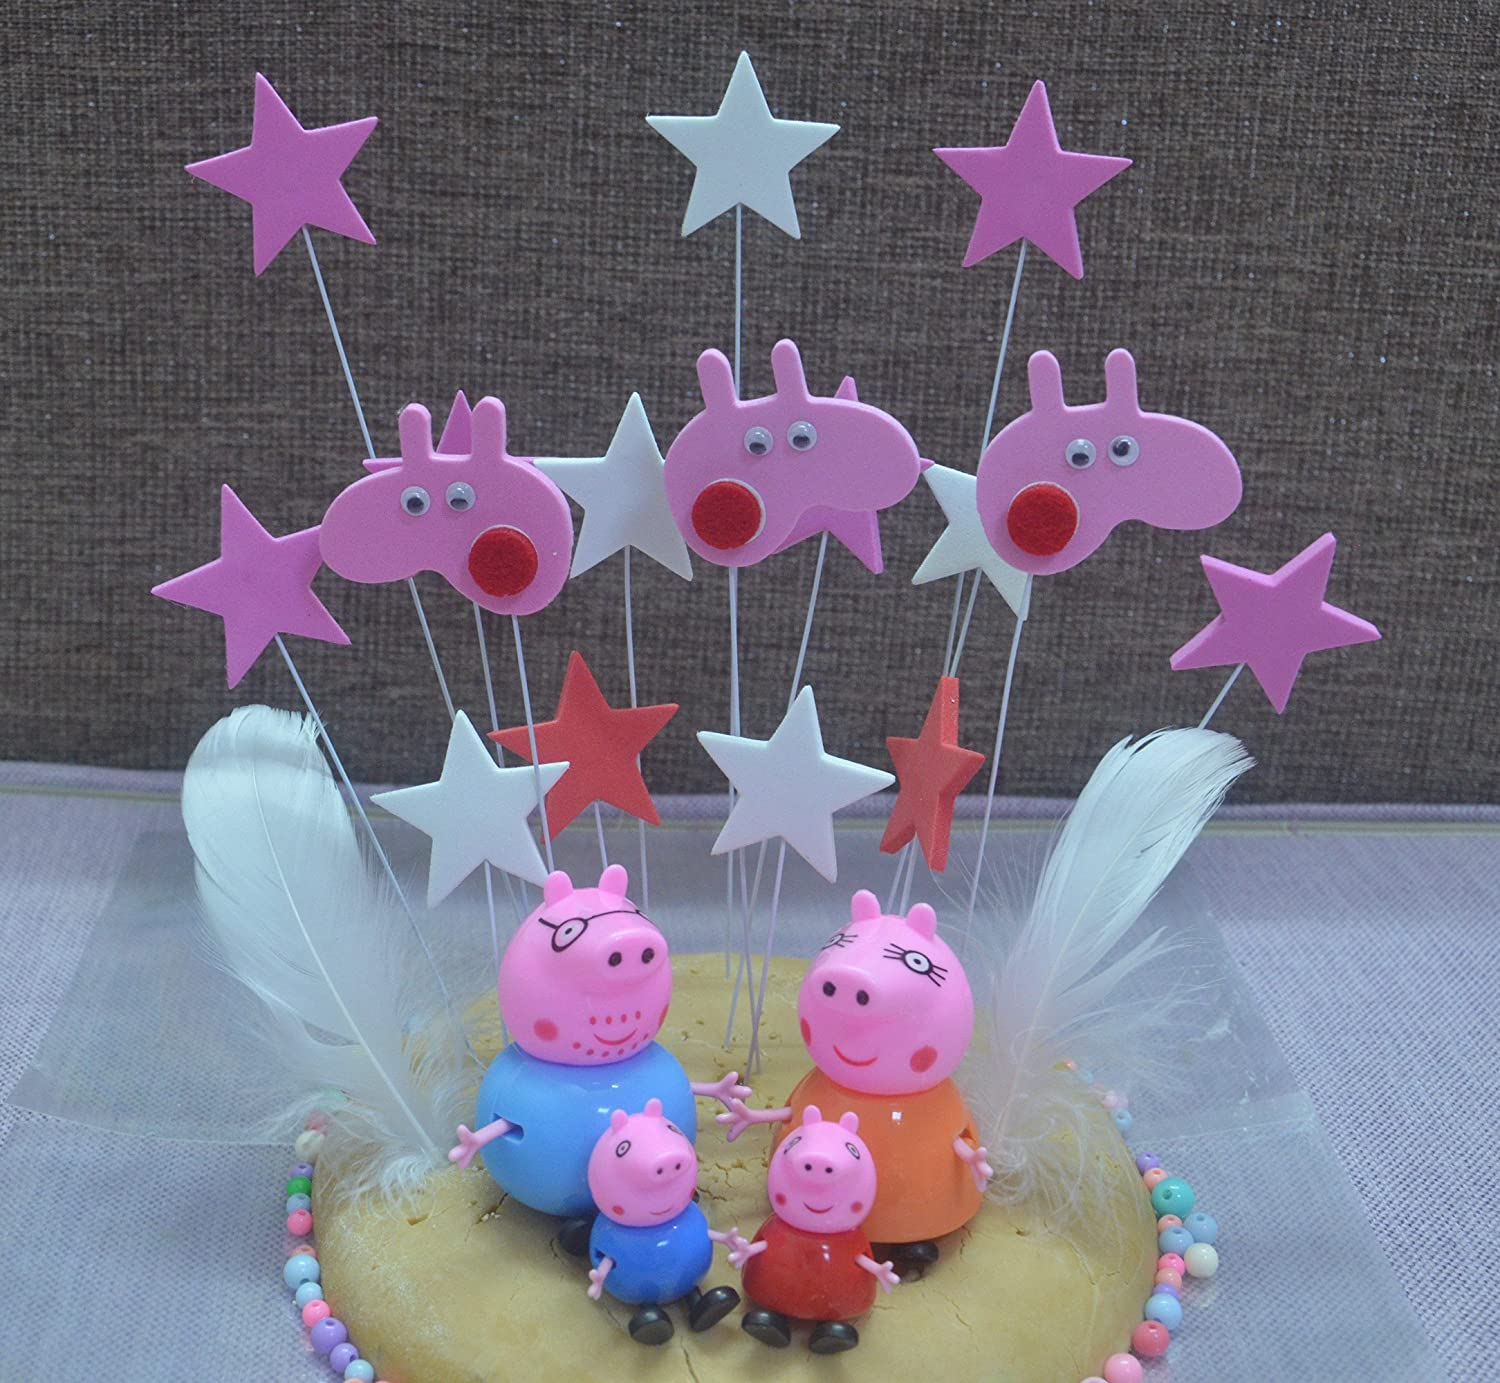 4pcs Peppa pig and a set of stars Cake Toppers Set Cupcake Toppers for Party Birthday Cake Decorations Peppa pig Cake Toppers Set